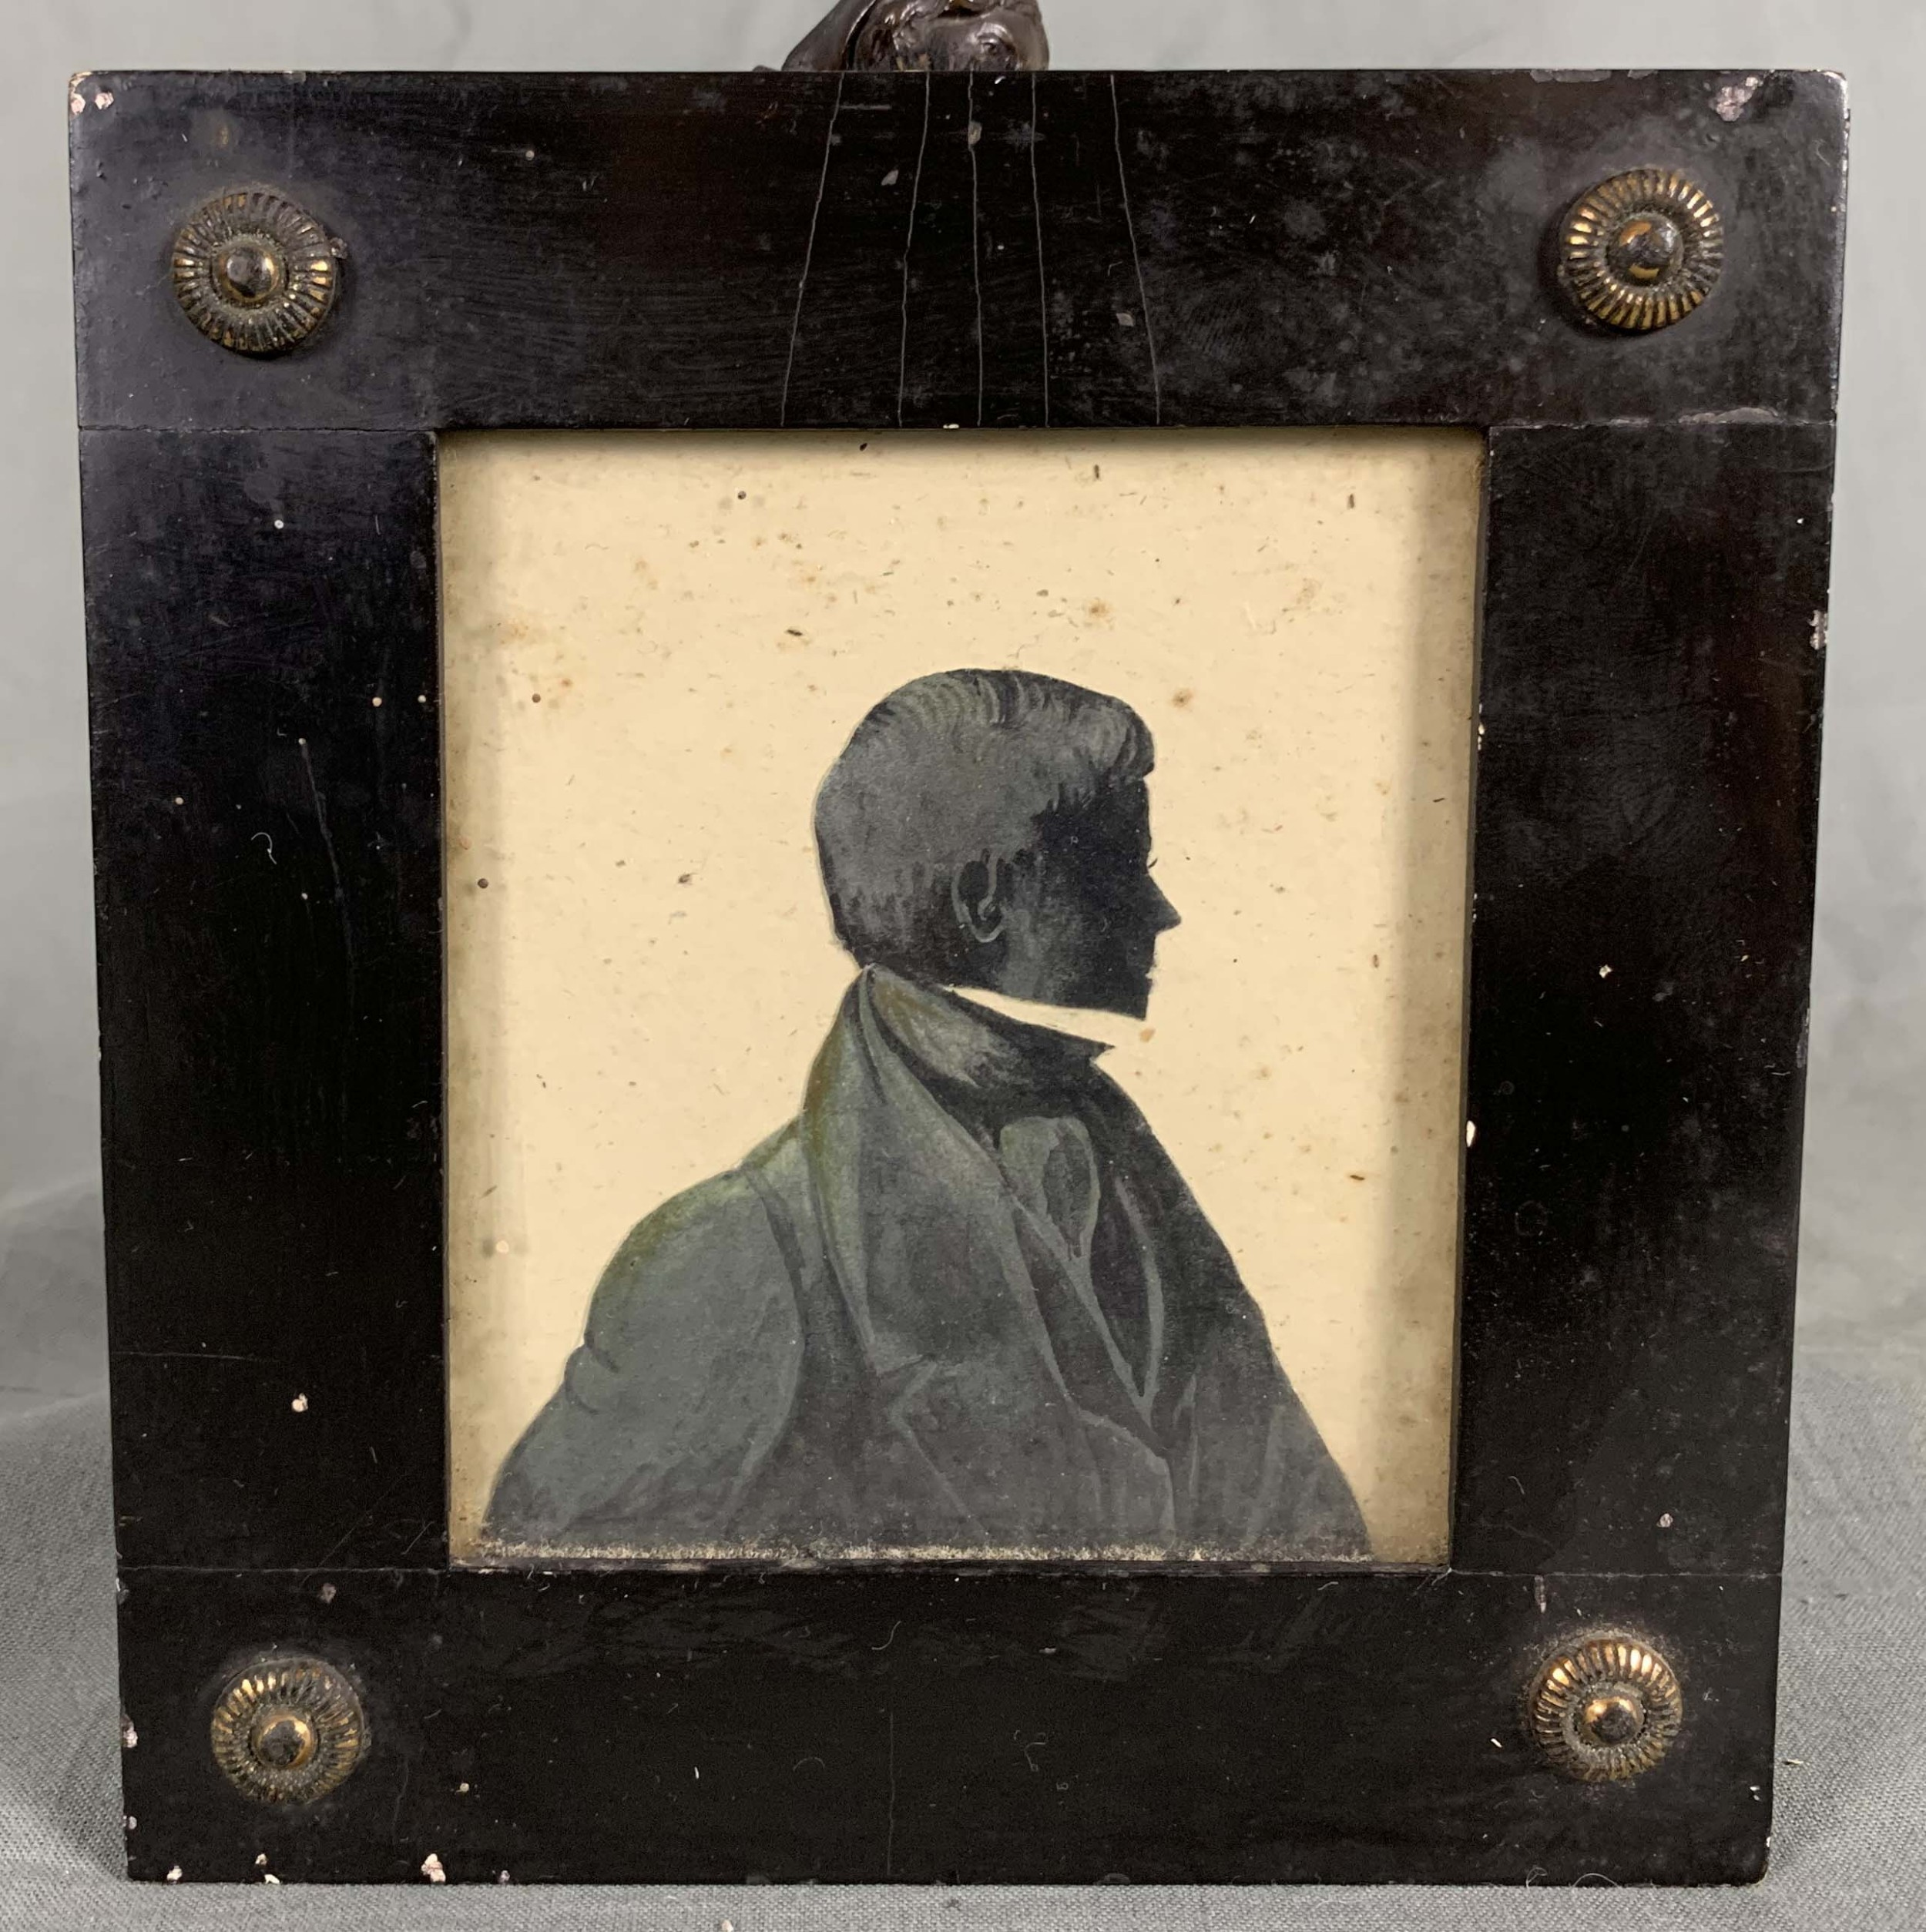 19th century miniature silhouette head and shoulder portrait of a gentleman